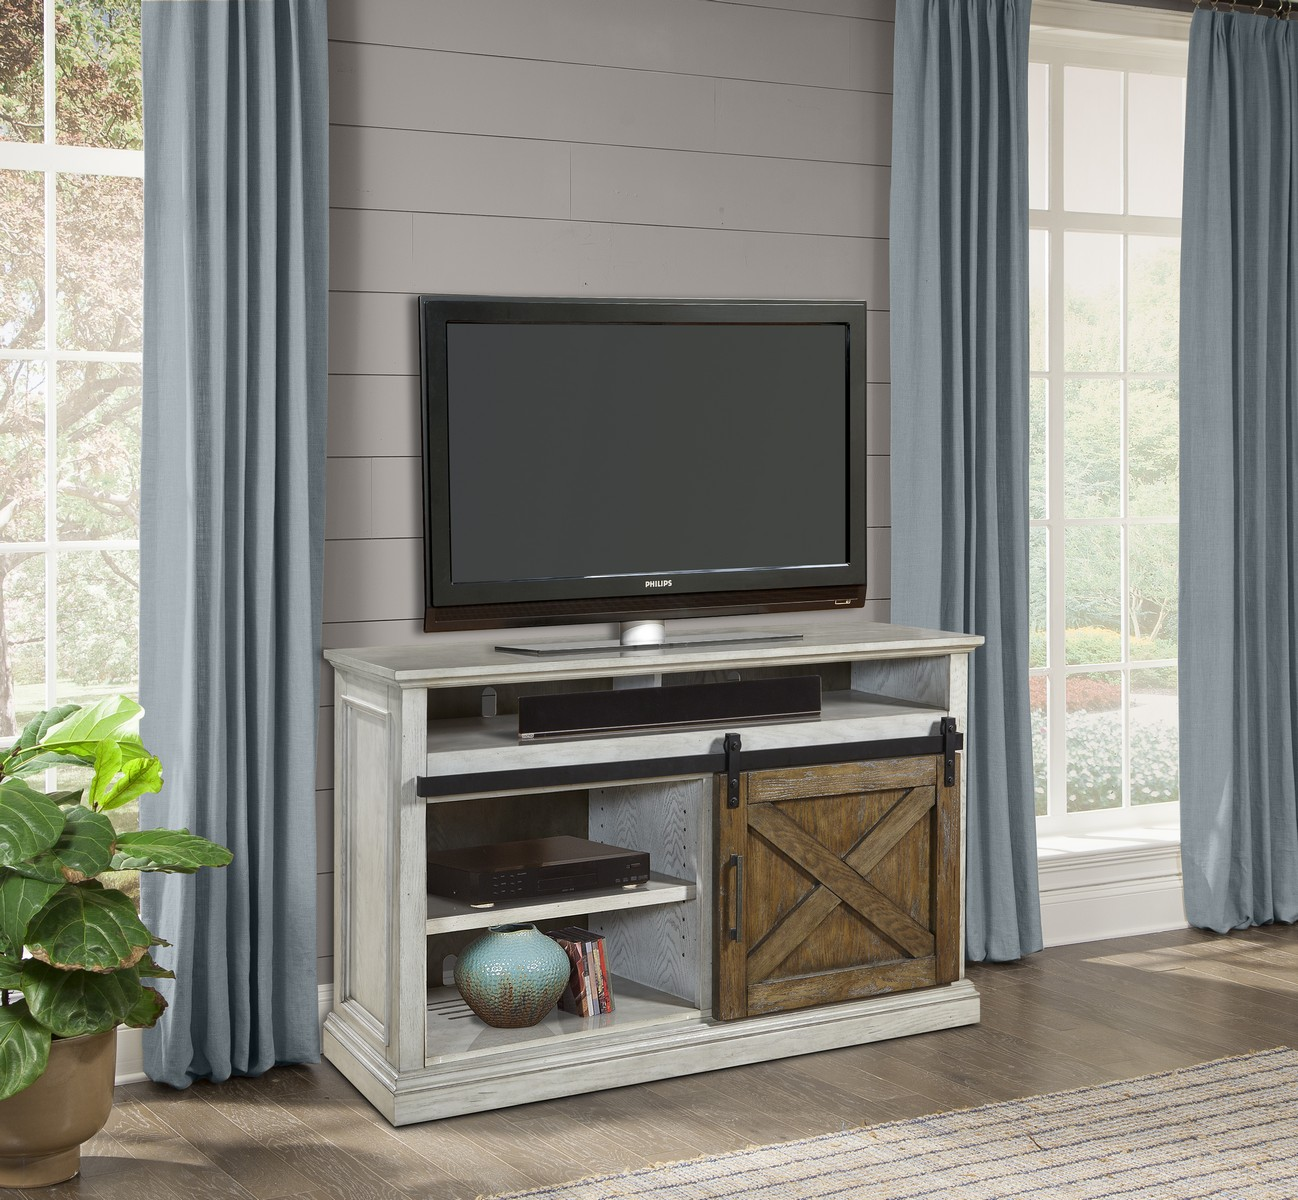 Parker House Savannah 55-inch TV Console with Sliding Doors - Vintage Parchment